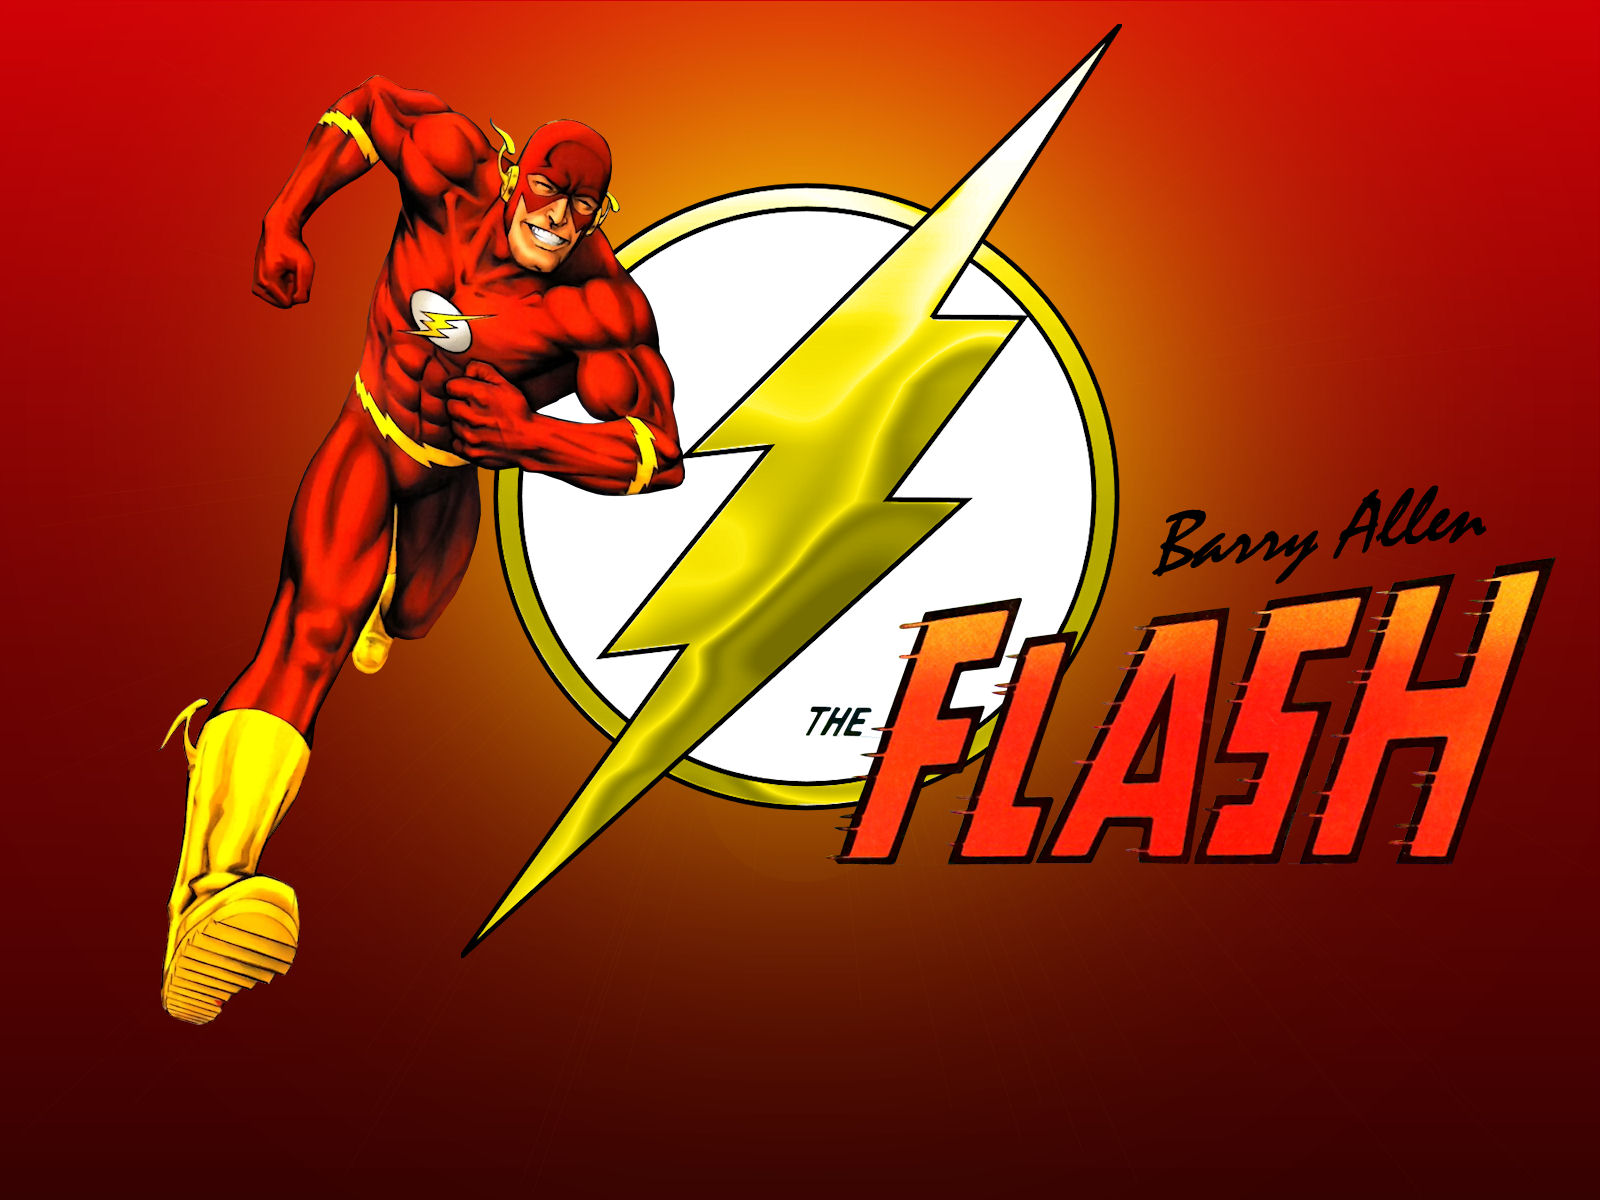 The Flash 25 Wallpaper   Trendy Wallpapers 1600x1200